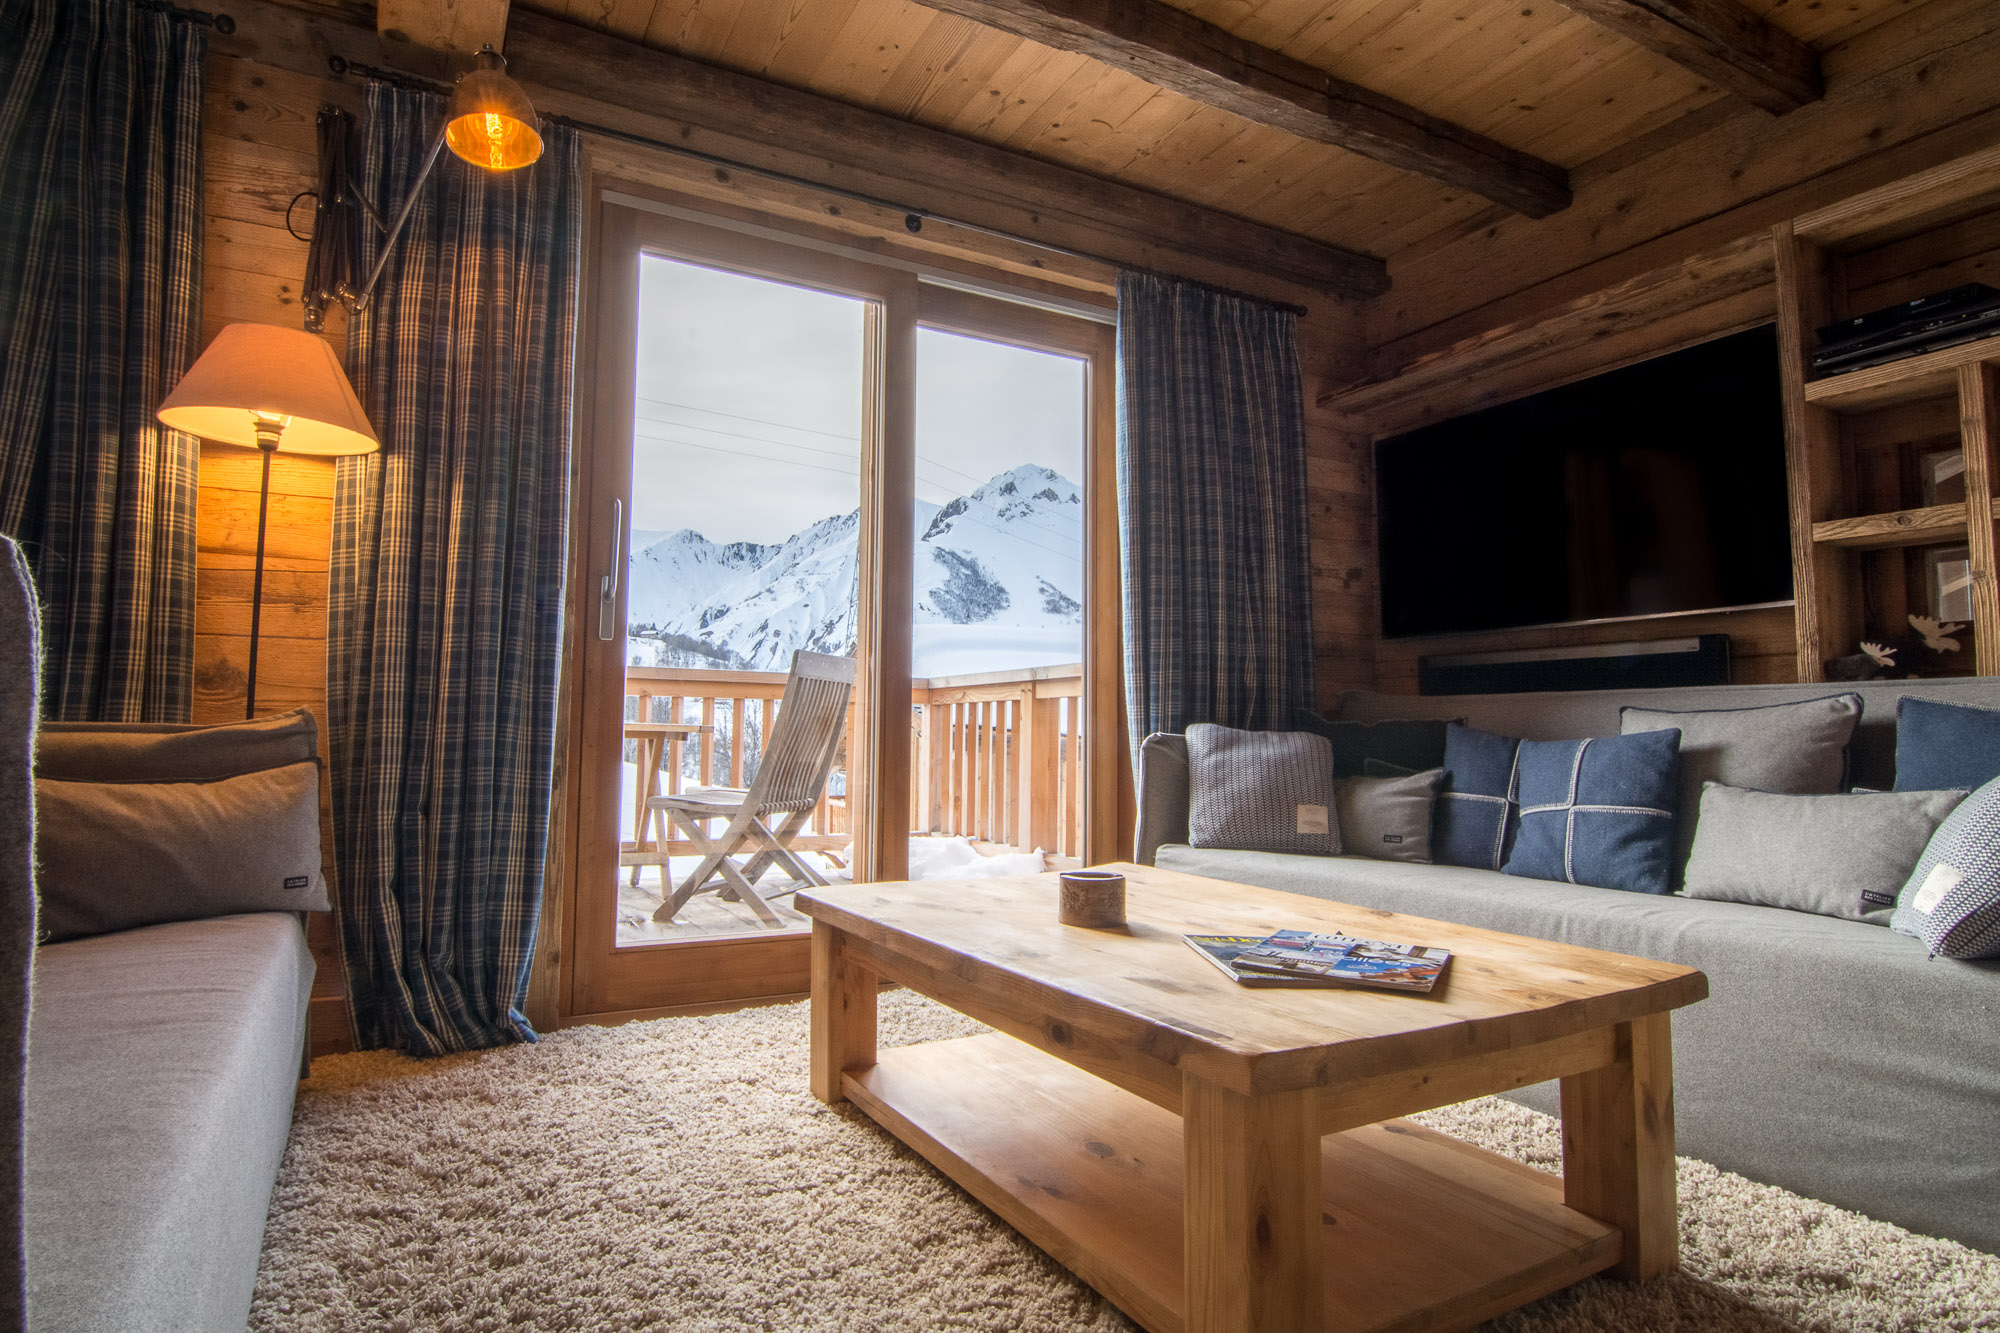 Ski chalet in quiet location with beautiful mountain views